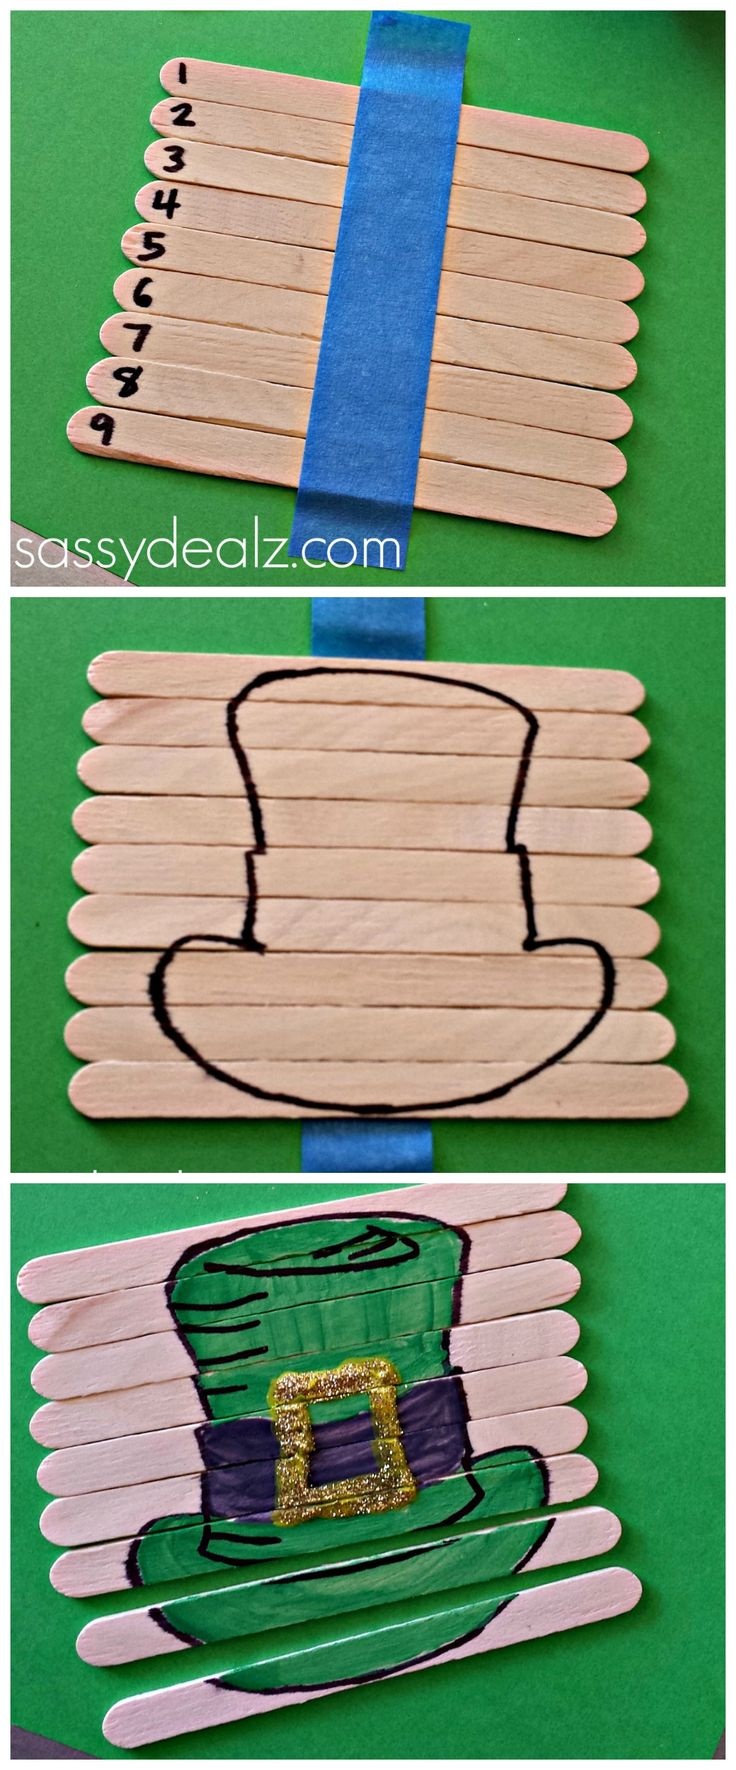 Leprechaun Hat Popsicle Stick Puzzle for St Patricks Day! #Kids activity #DIY | CraftyMorning.com